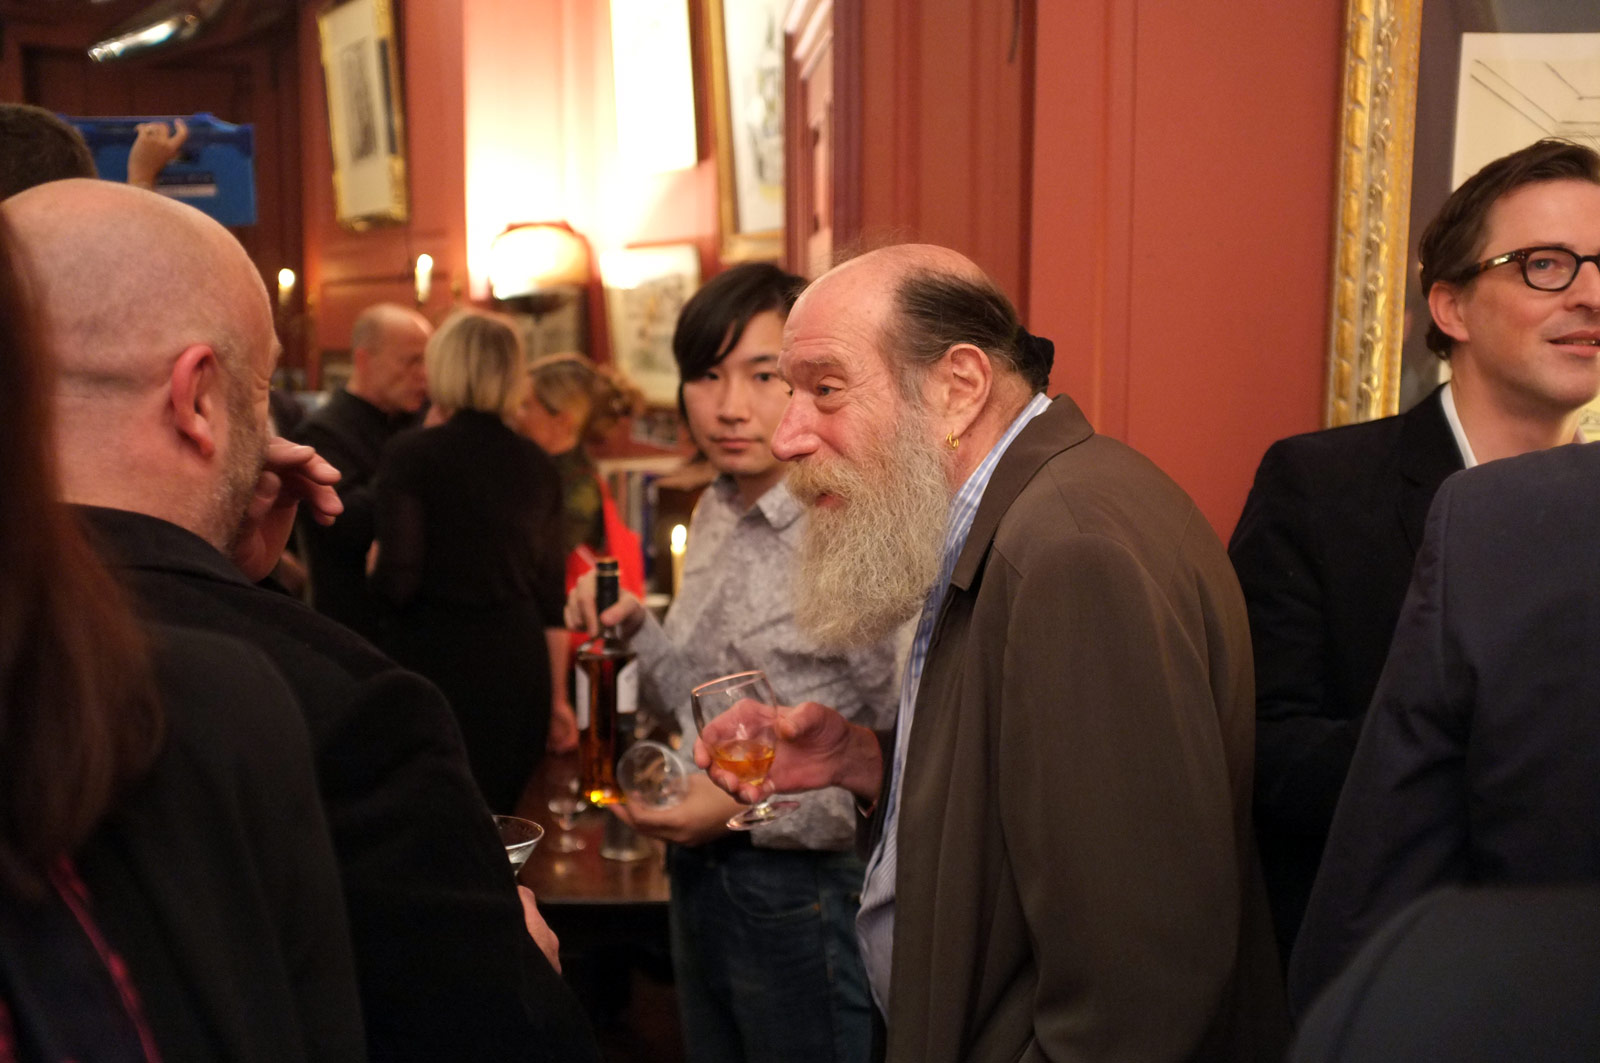 Image of Lawrence Weiner from Wikidata